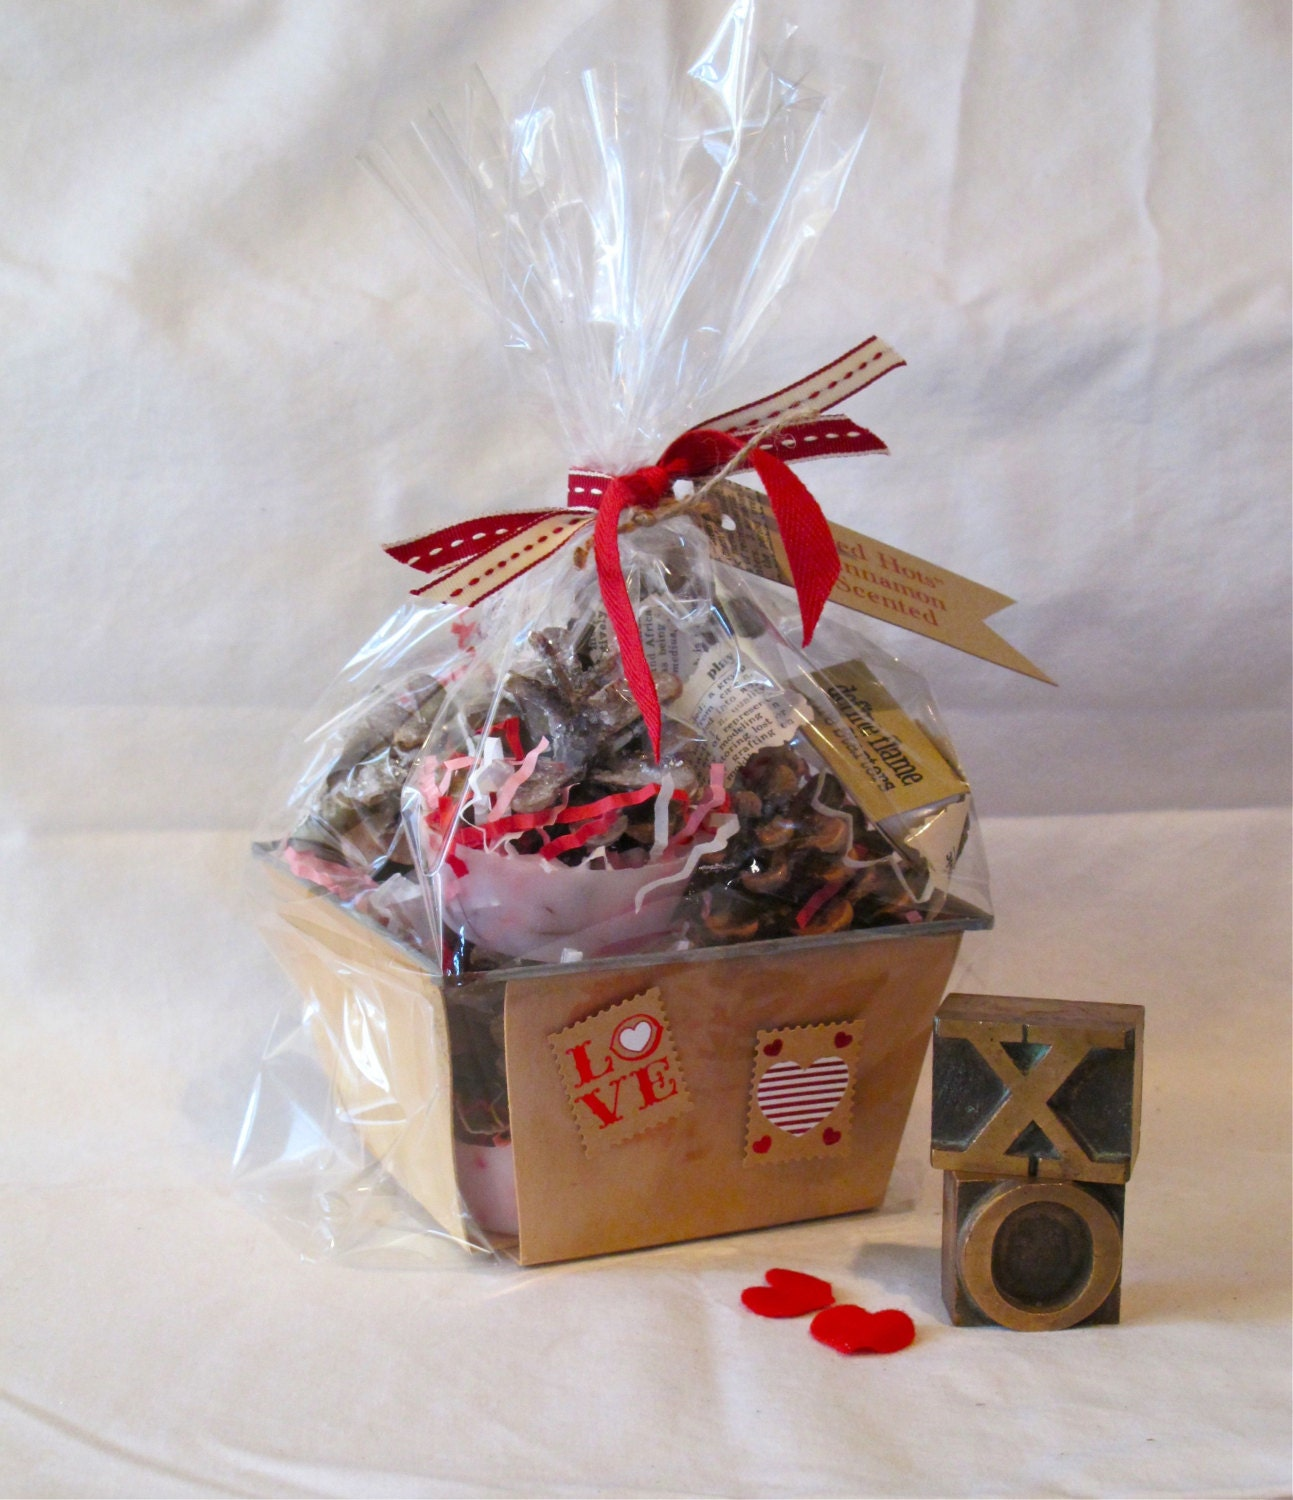 Define Flame, Pinecone, Fire Starters, Valentines Day, Vintage Berry Basket, Valentines Day Gift, Red Hots, Cinnamon Scented